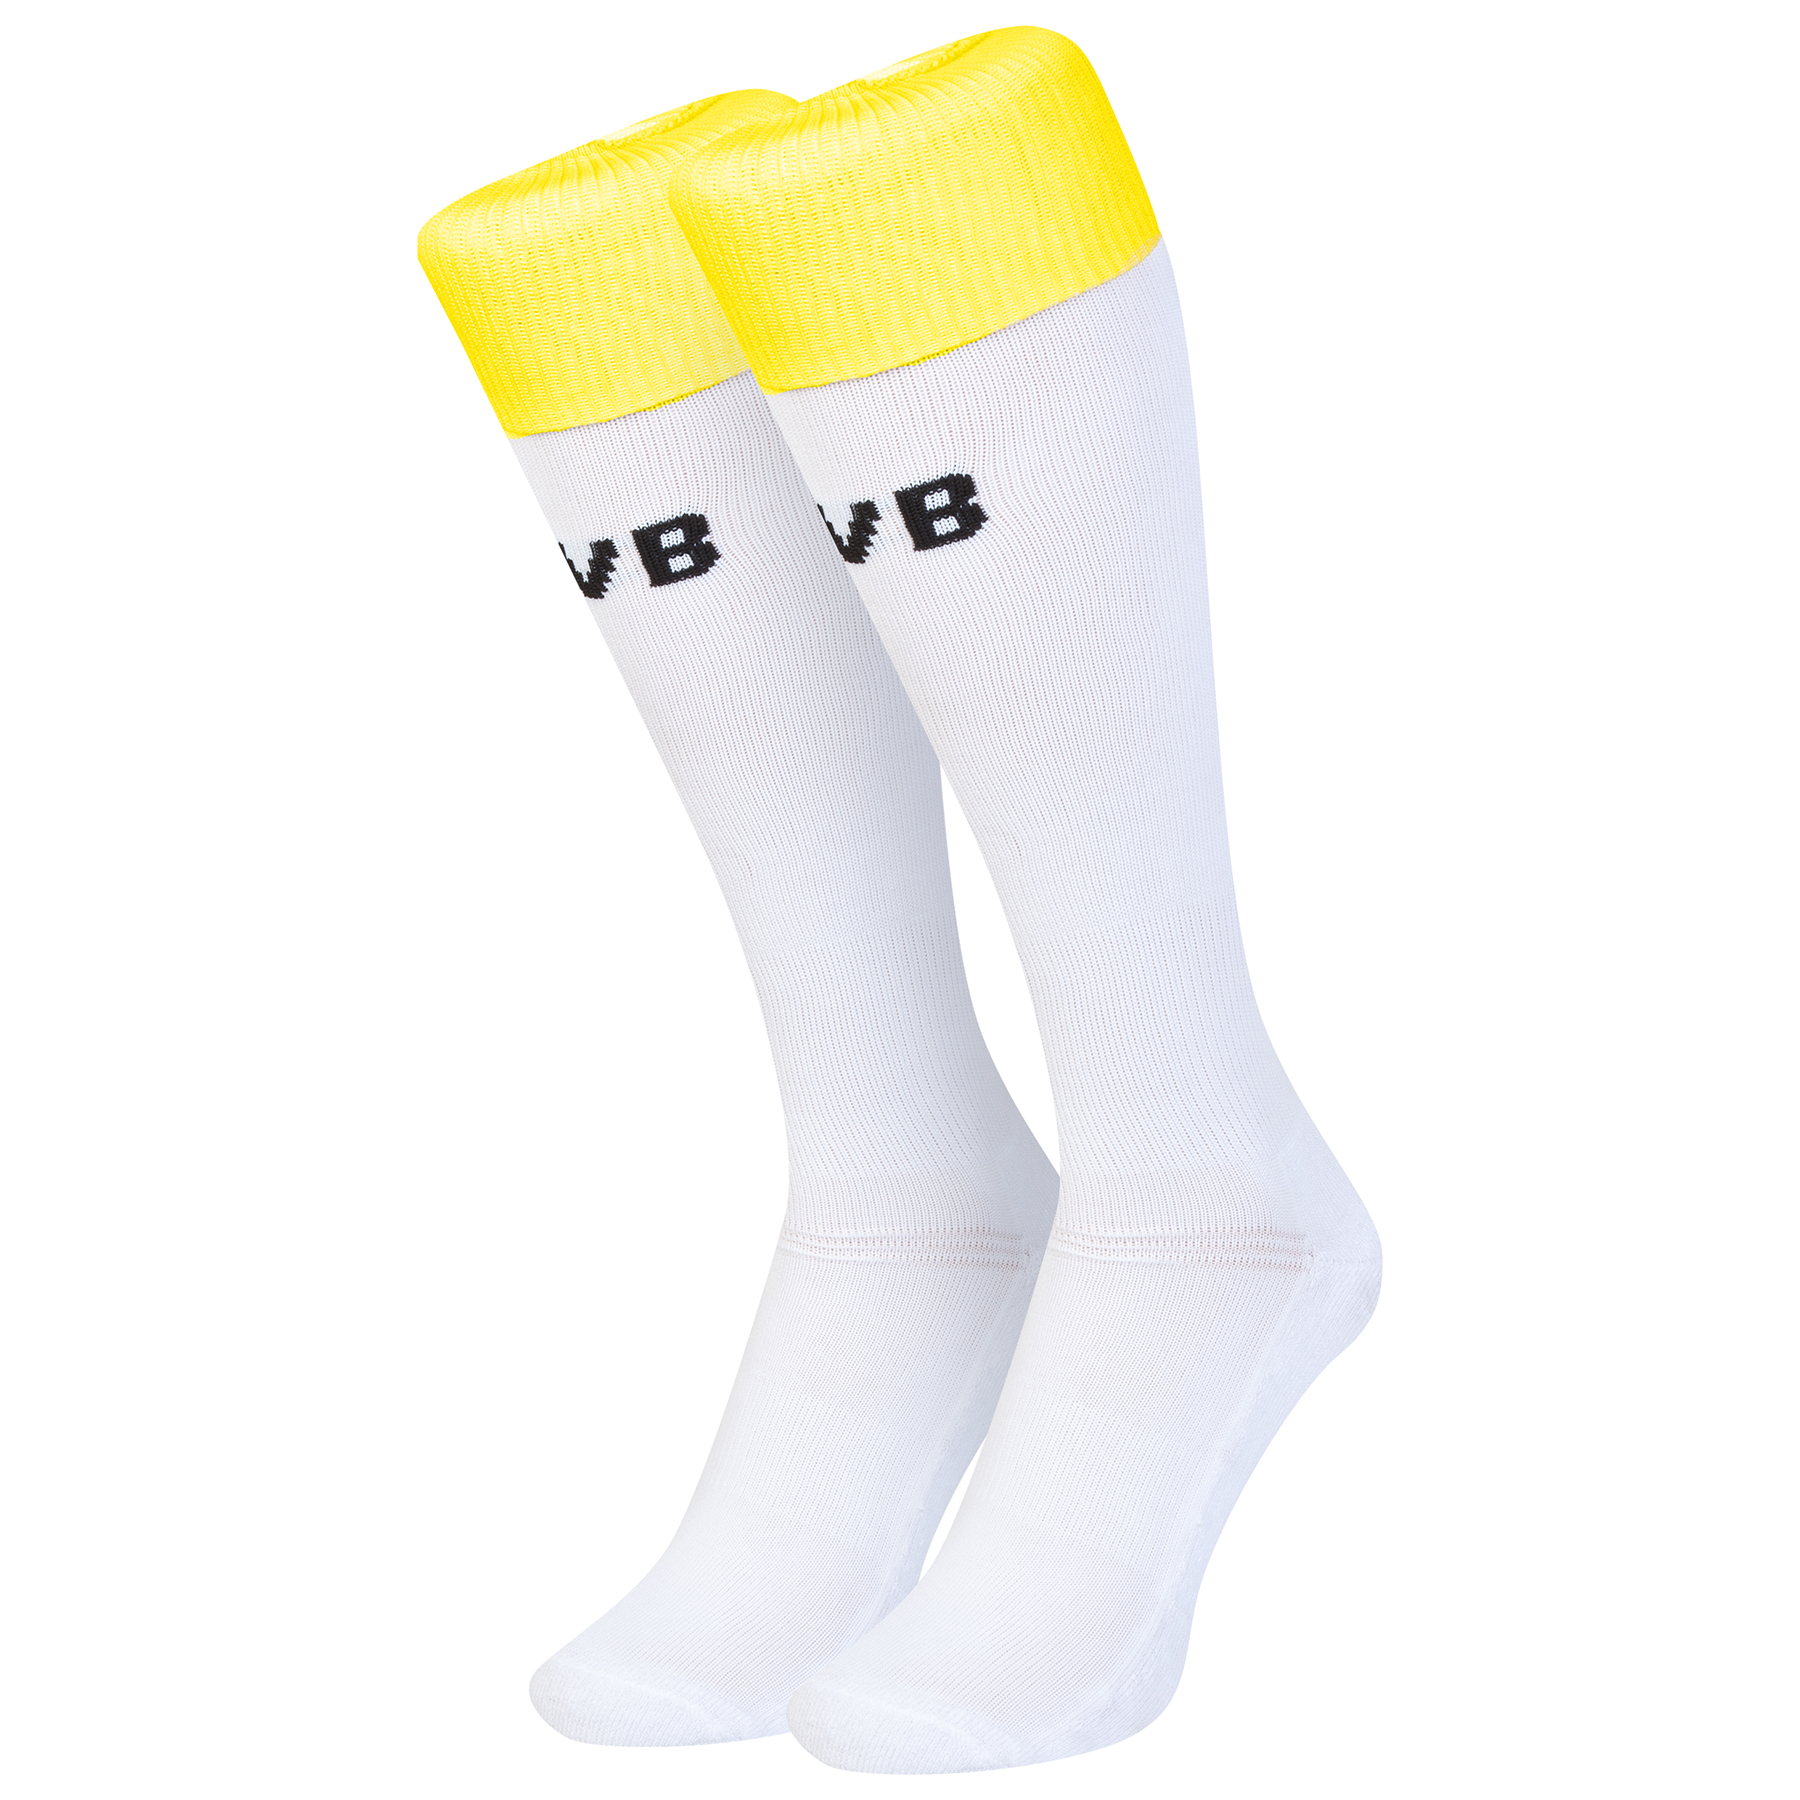 BVB Third Socks 2015/16 White